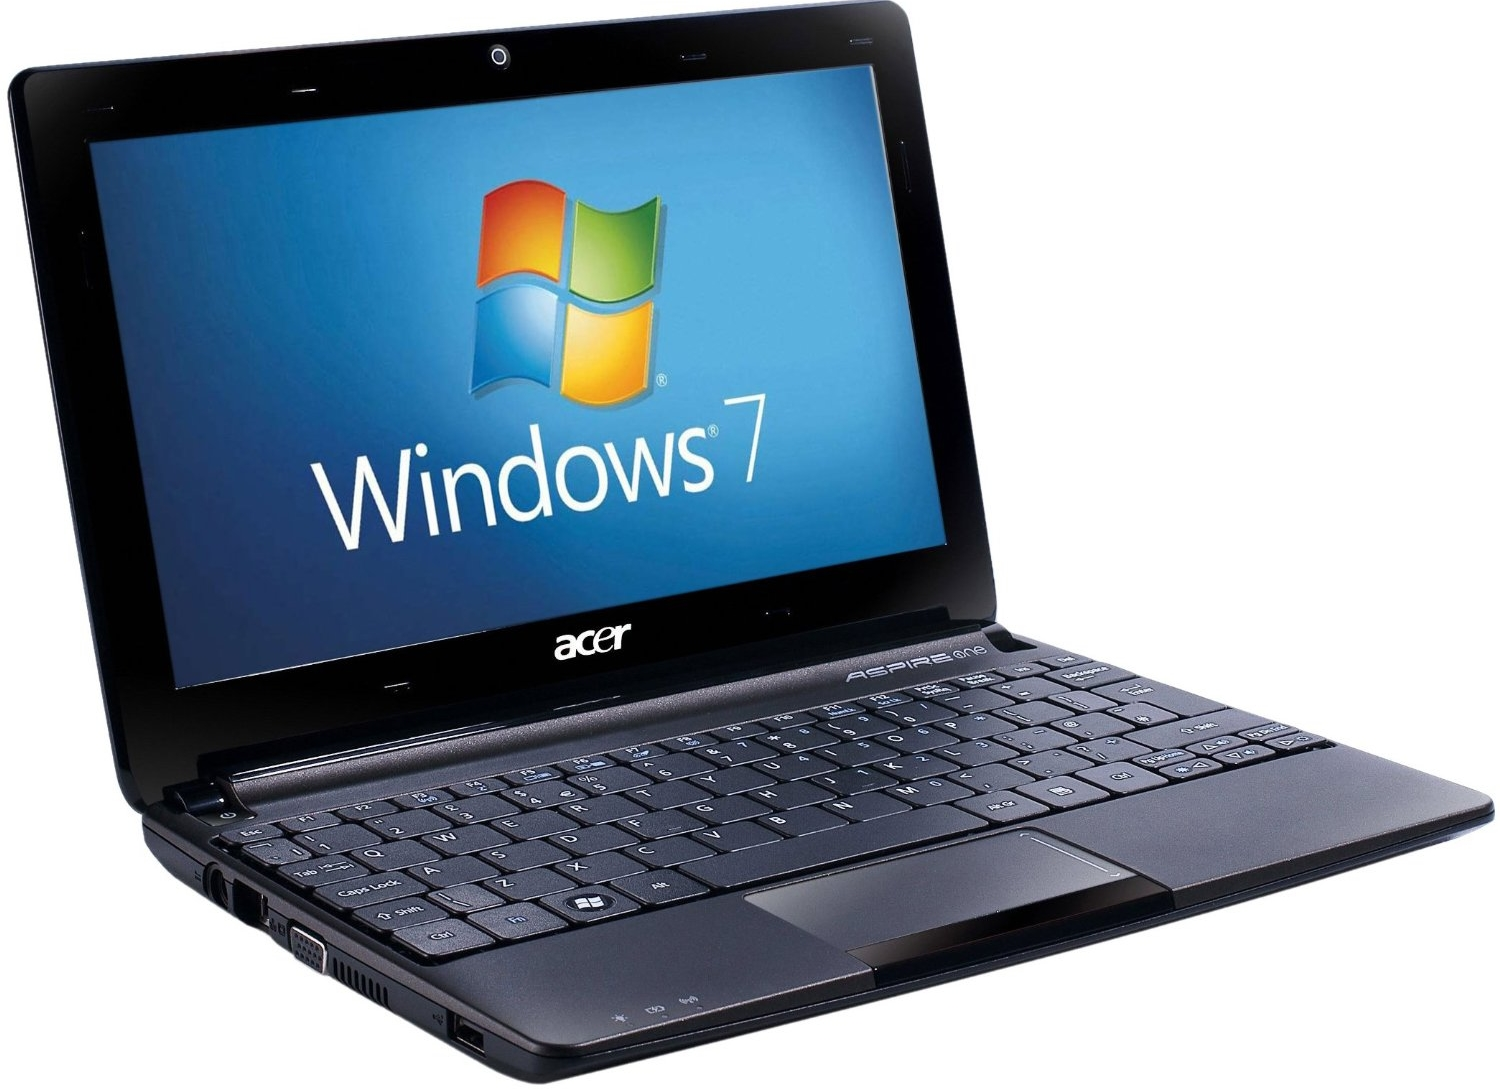 Netbook acer aspire one d257 (aod257). Download drivers for.